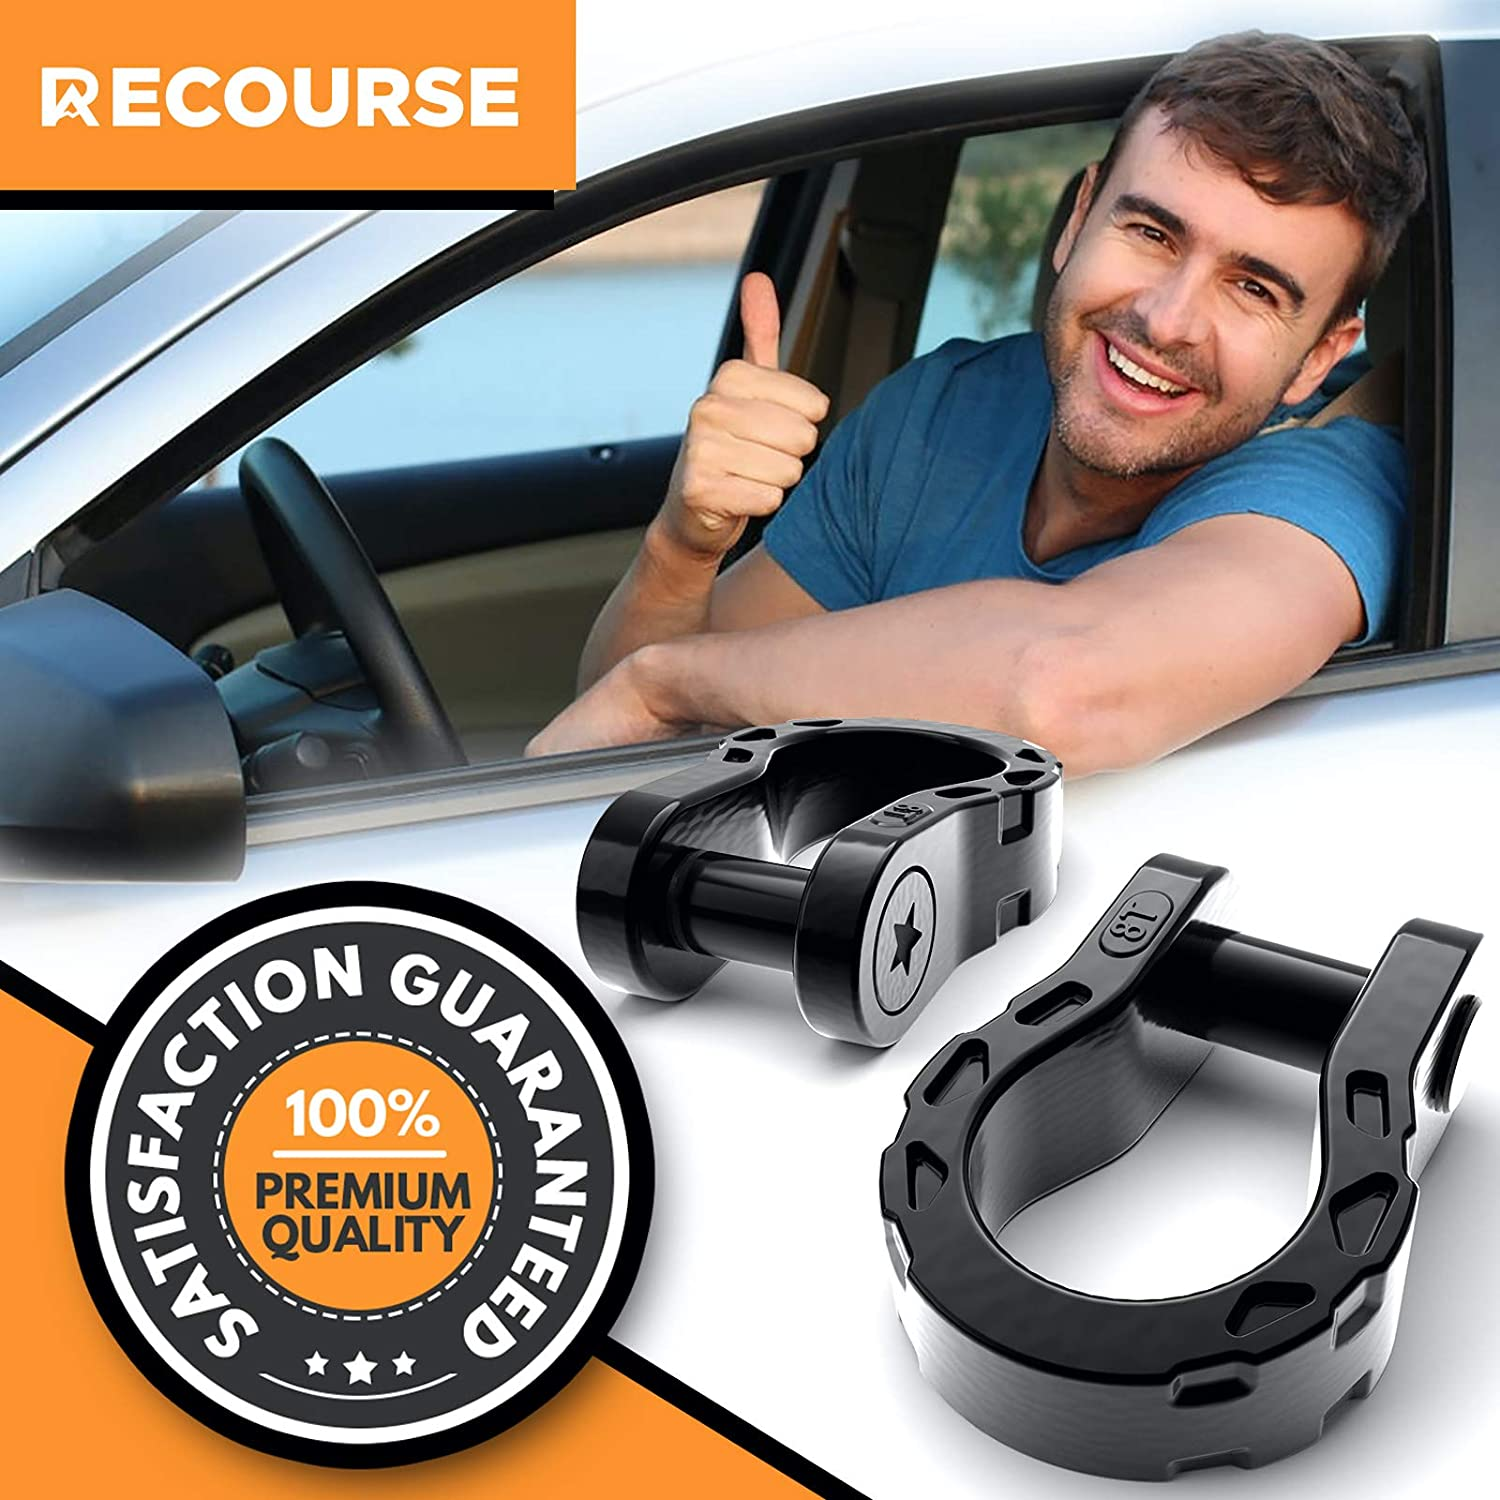 Tow Strap Shackles 3//4 D Ring Shackle with 7//8 Security Pin Anti Theft Offroad Accessories for Jeep Vehicle Recovery Maximum Break Strength 2 Shackles and 1 Screw Key 68,000 lbs